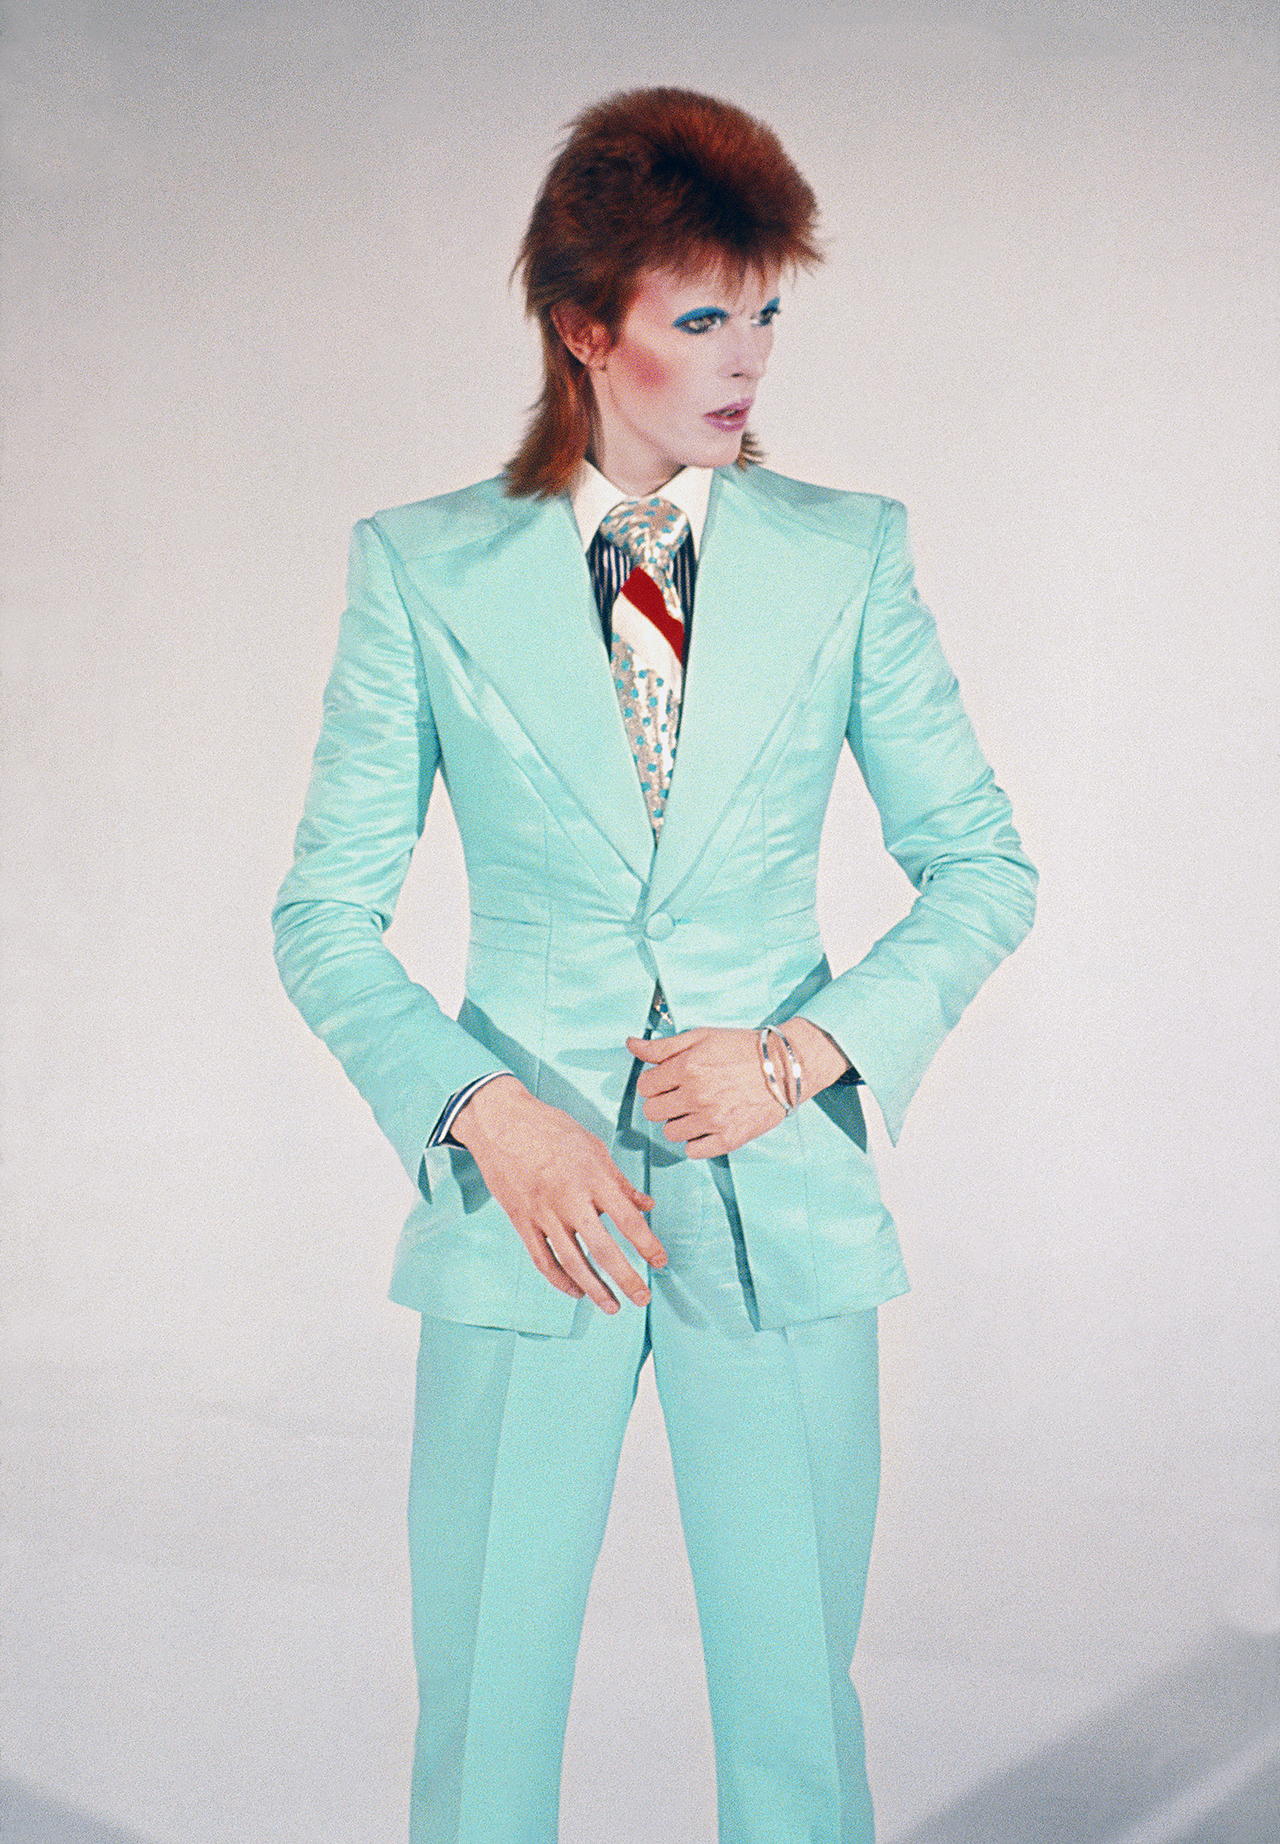 Bowie, Life on Mars, 1973